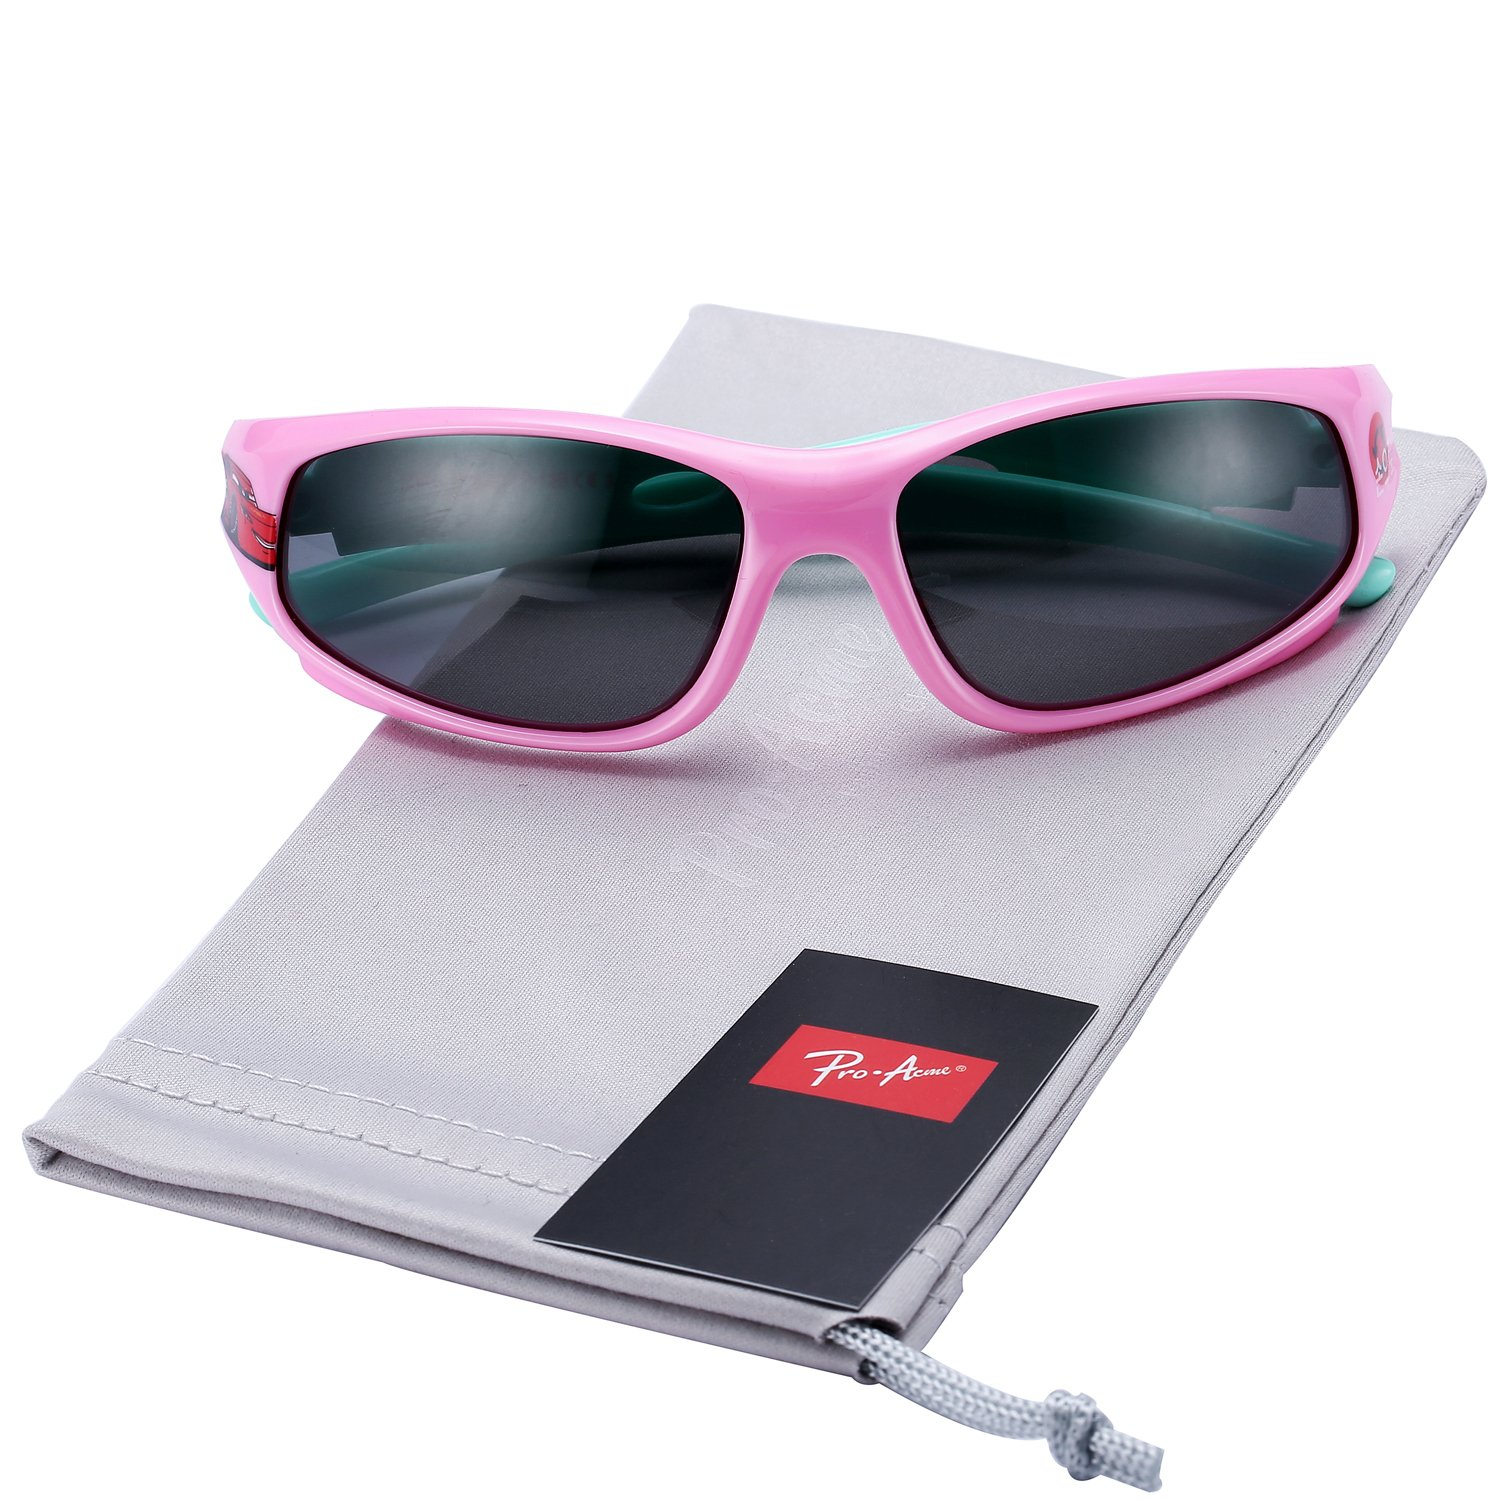 Pro Acme TR90 Unbreakable Polarized Sports Sunglasses for Kids Boys and Girls Pink PAK001A